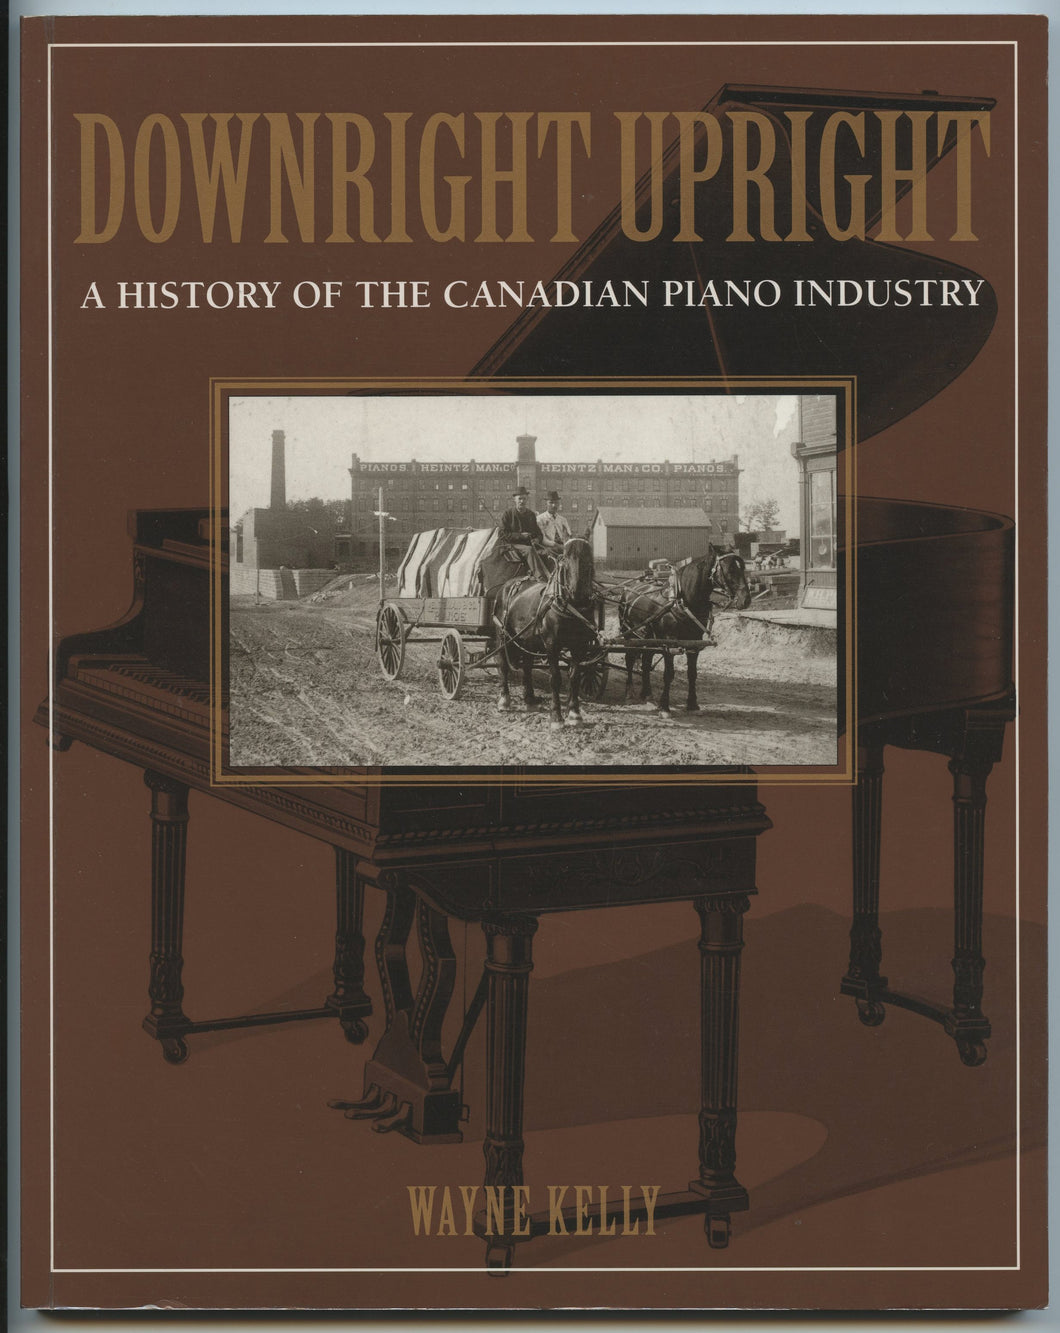 Downright Upright: A History of the Canadian Piano Industry